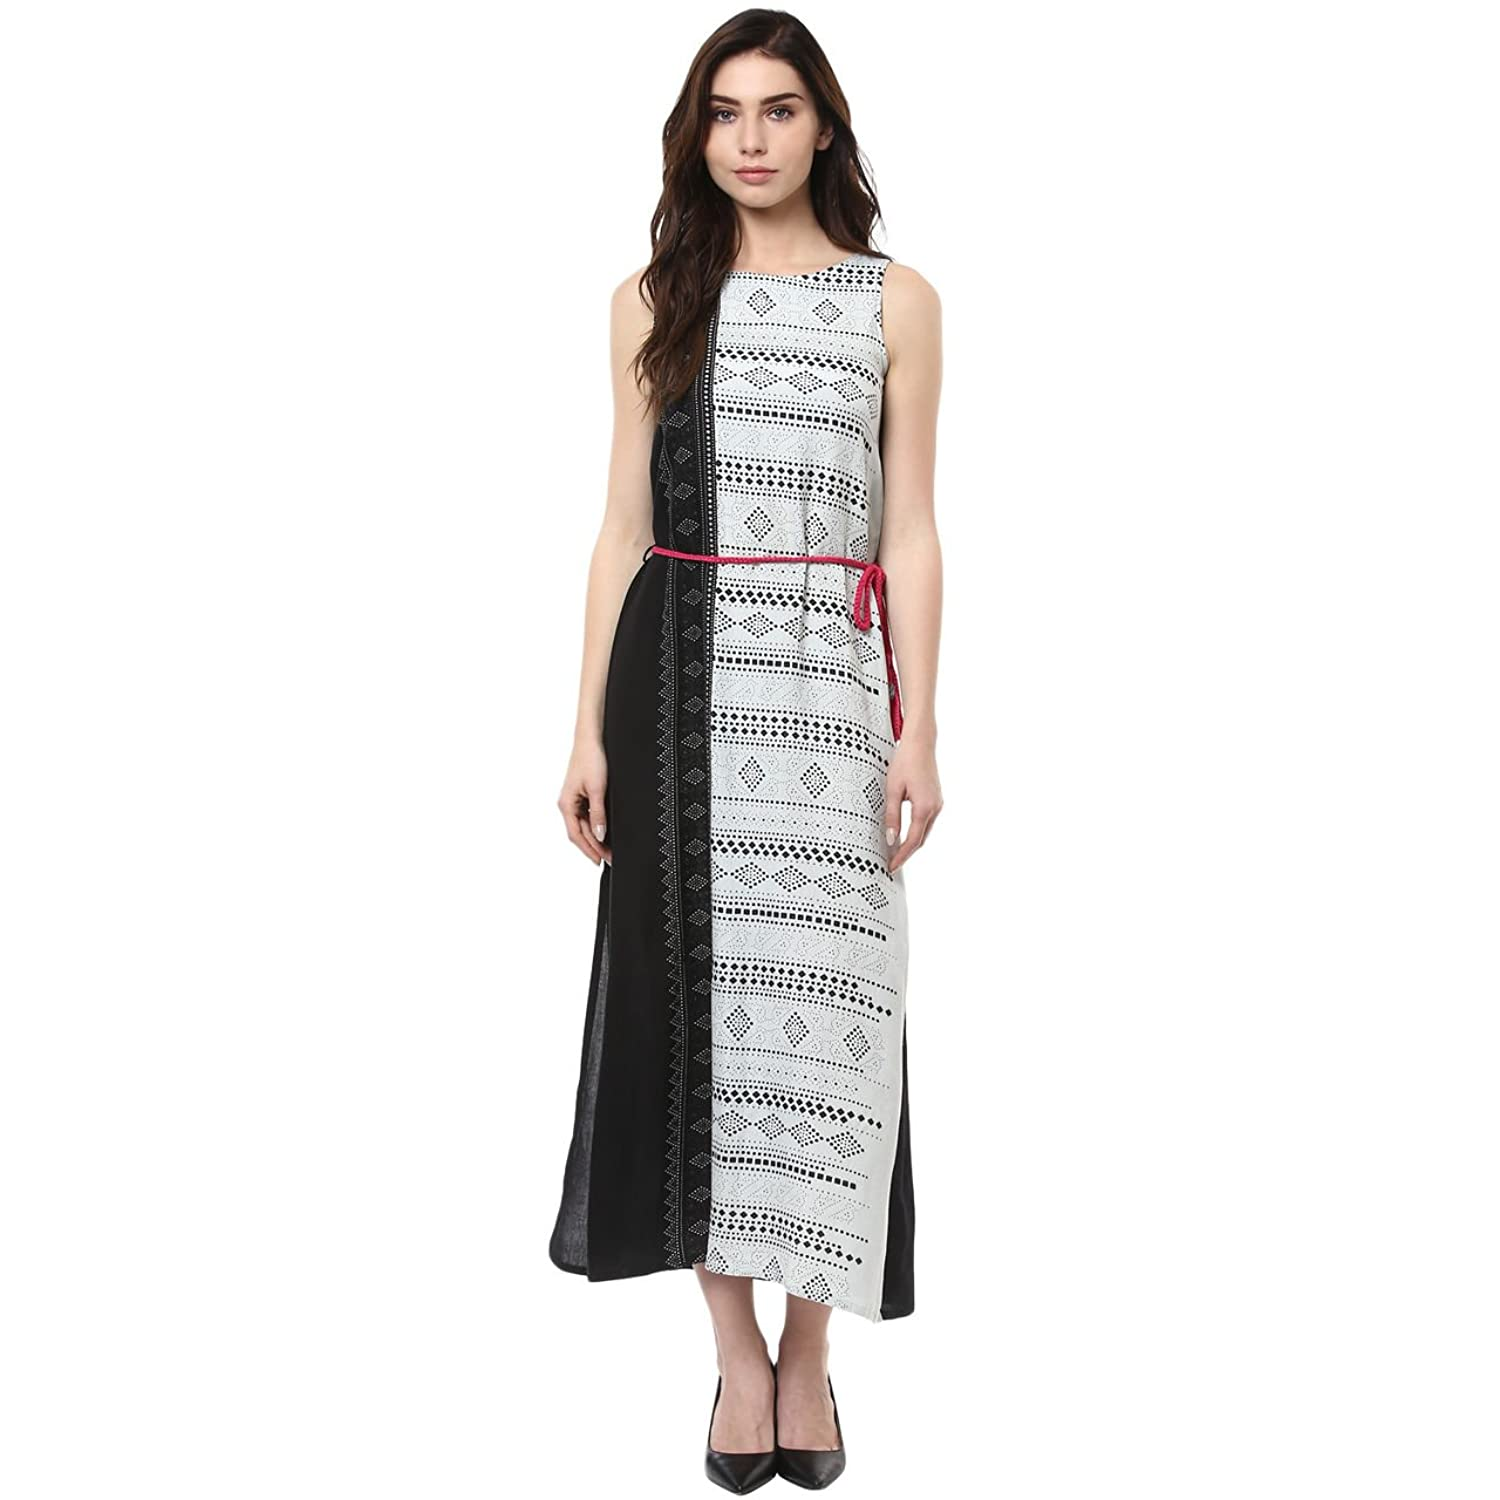 Women's Rayon Flex Dress